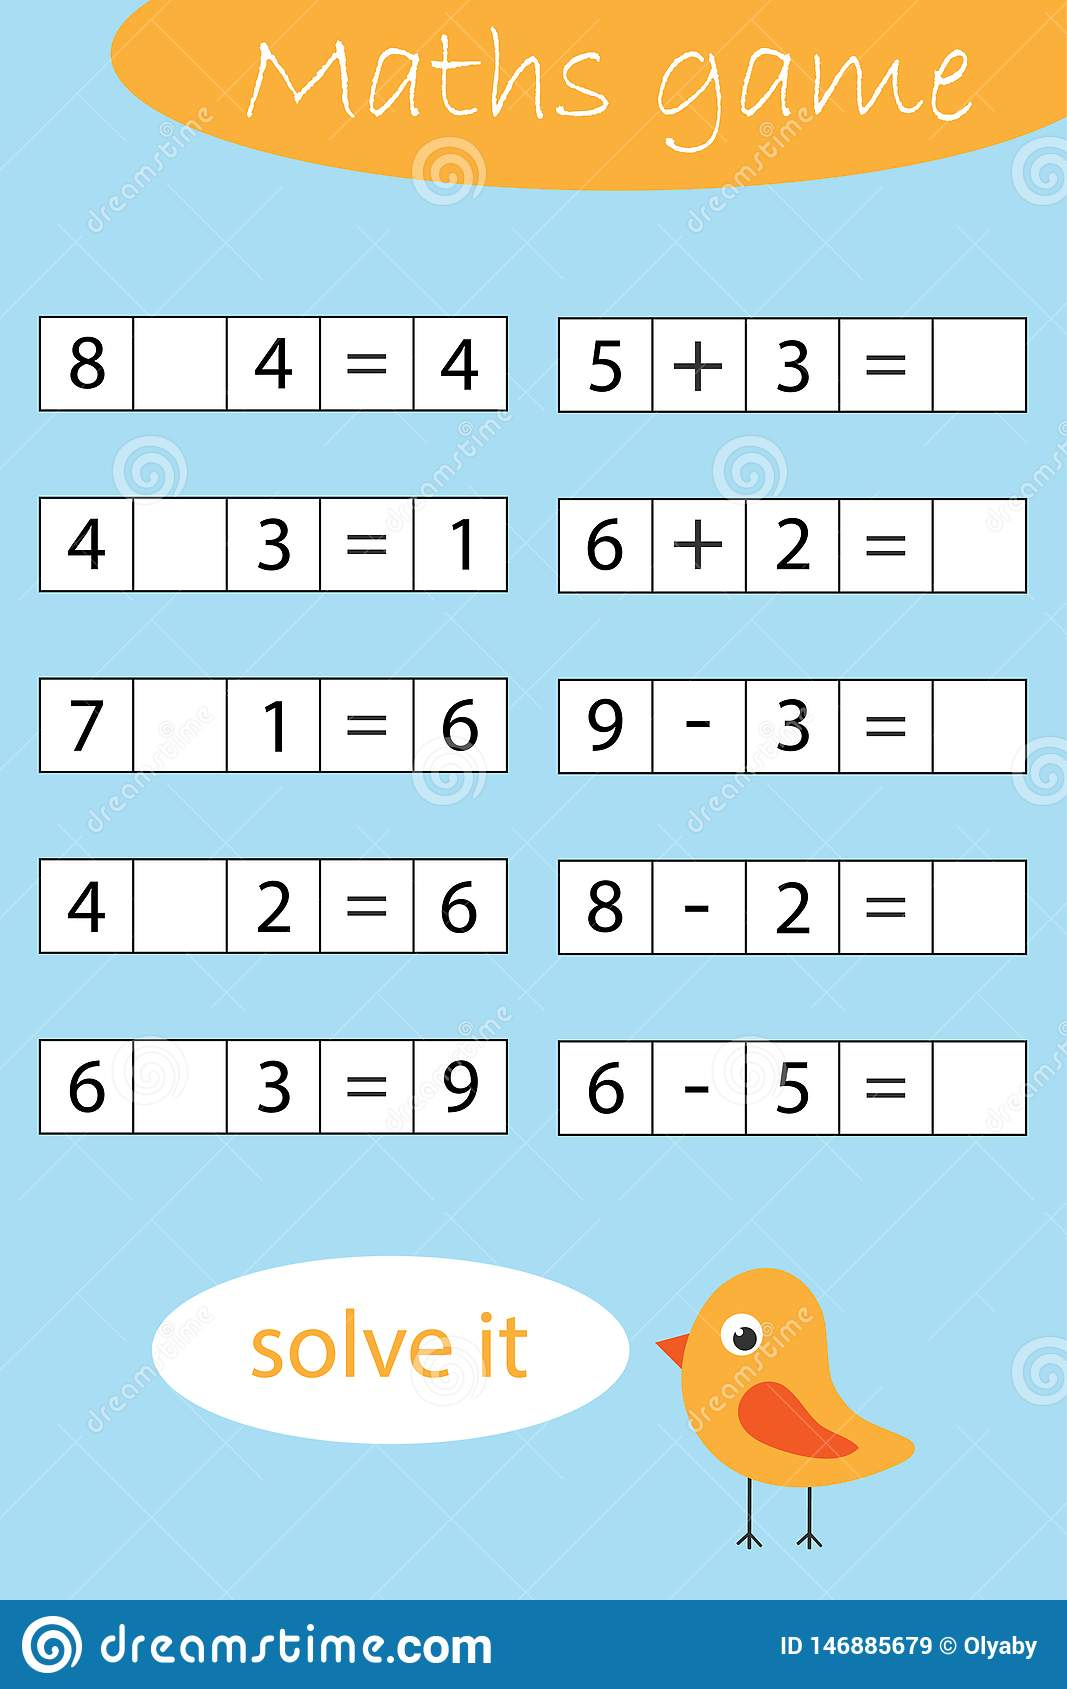 Mathematics Game For Children Find A Solution Solve And